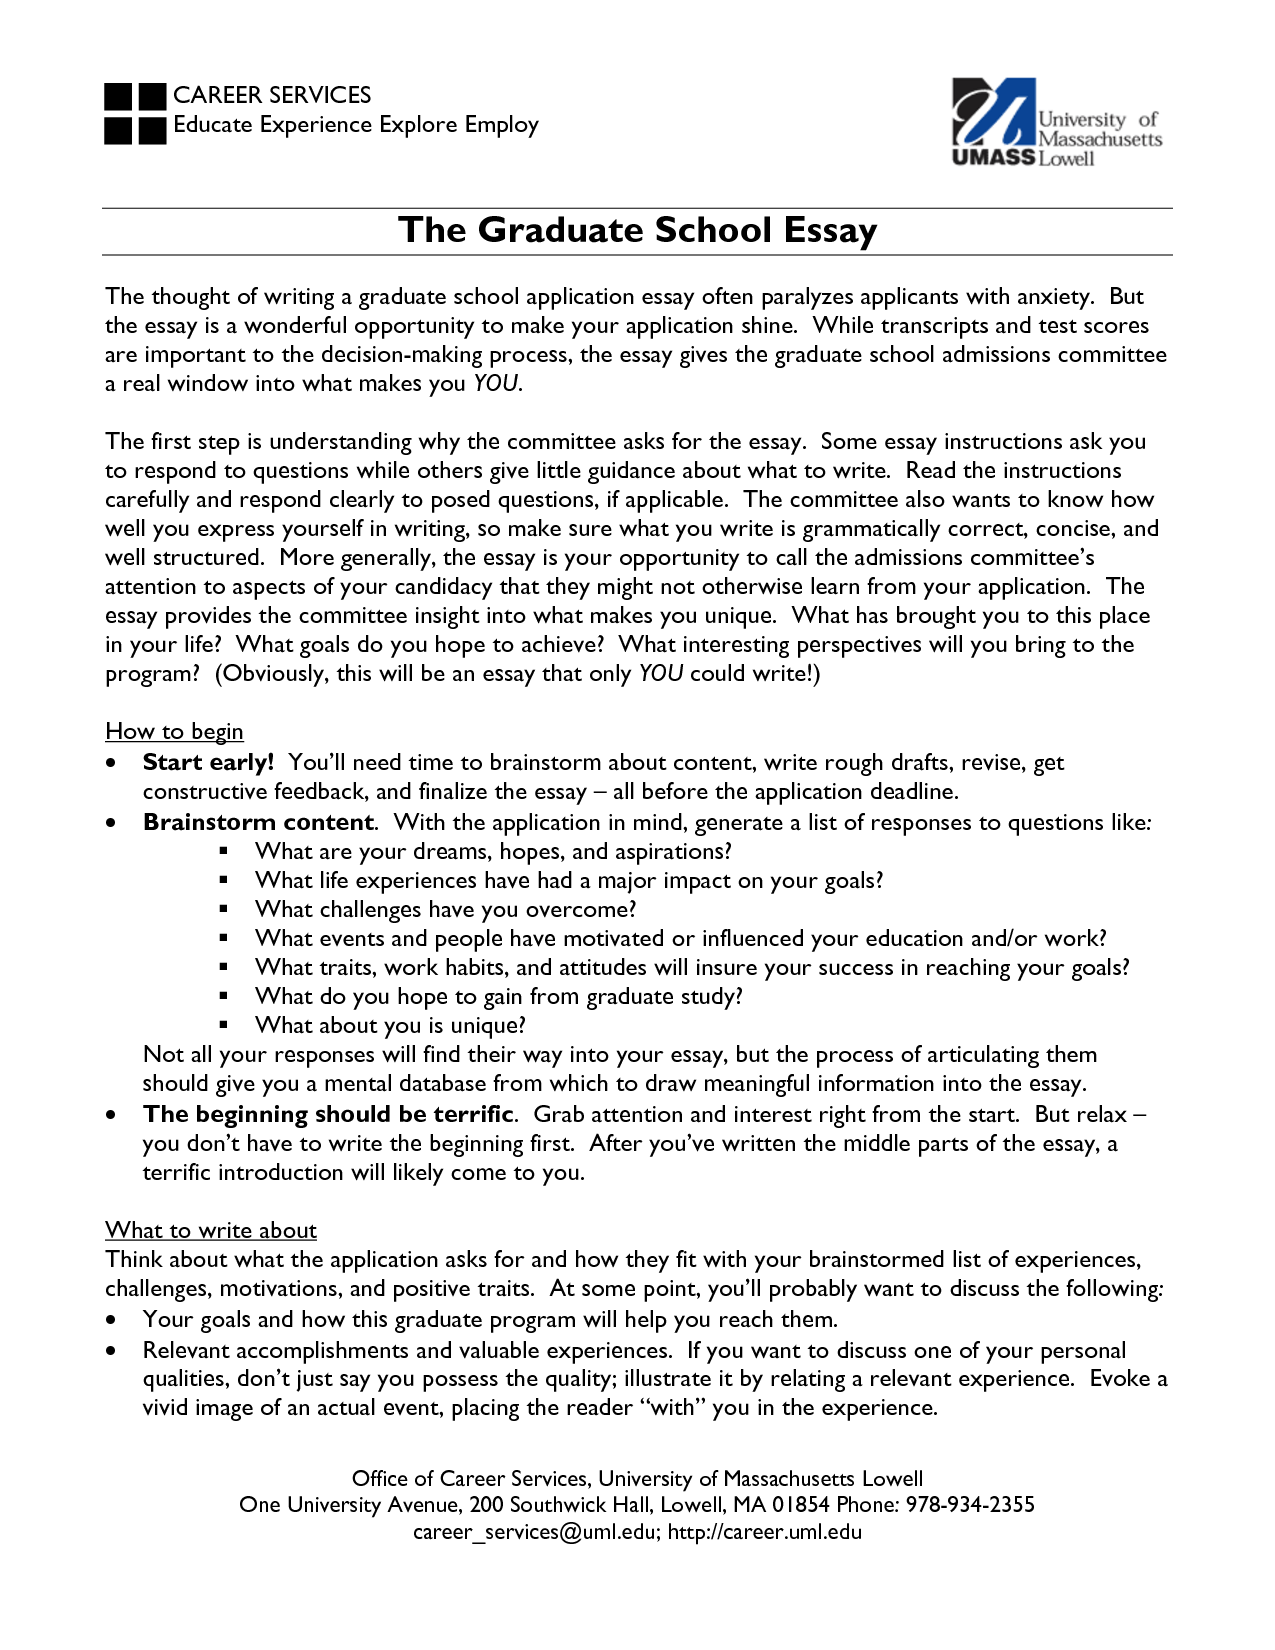 Writing a graduate school essay